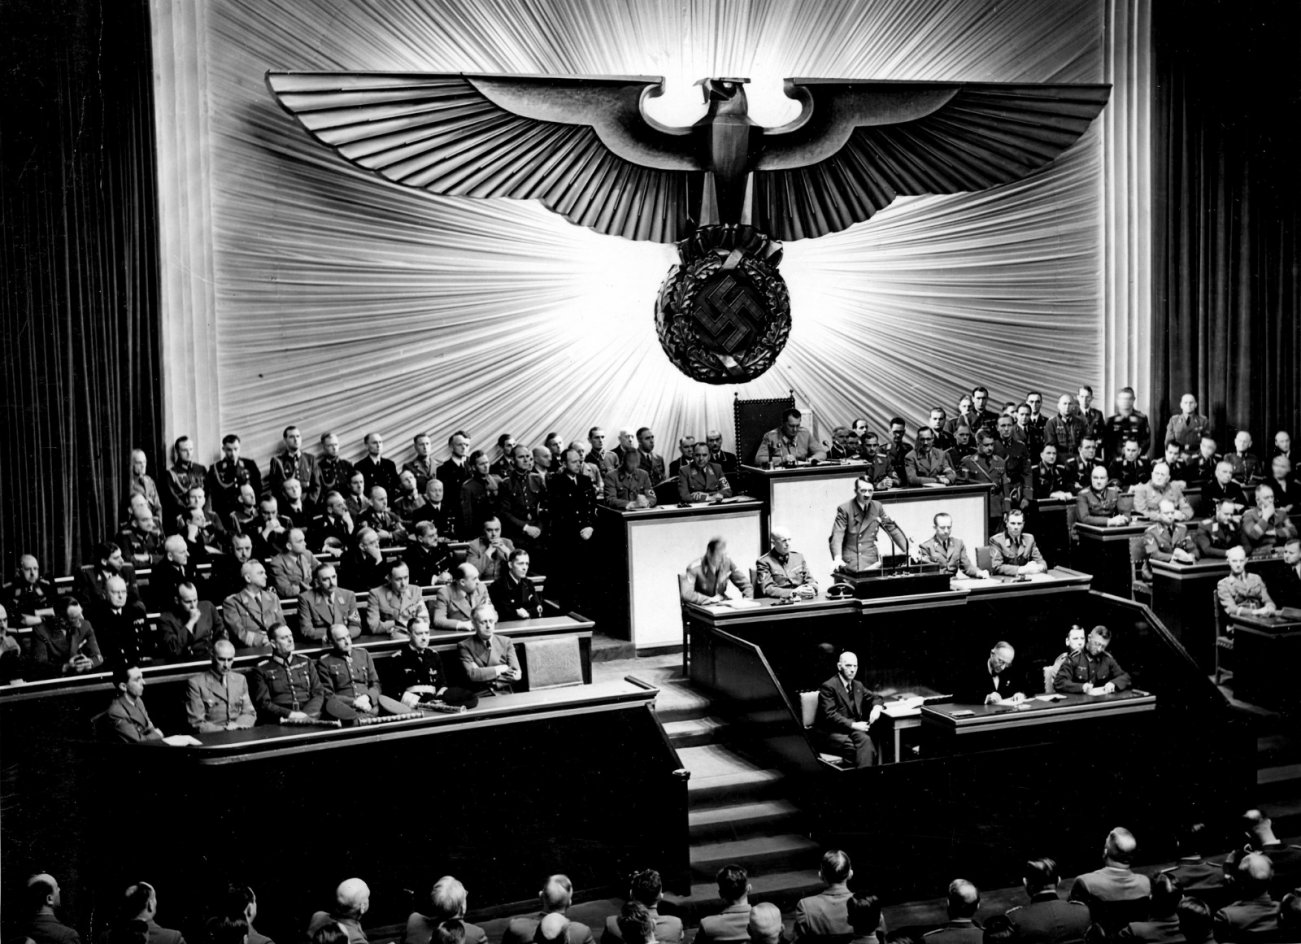 How 1 Mistake Cost Hitler Victory During World War II